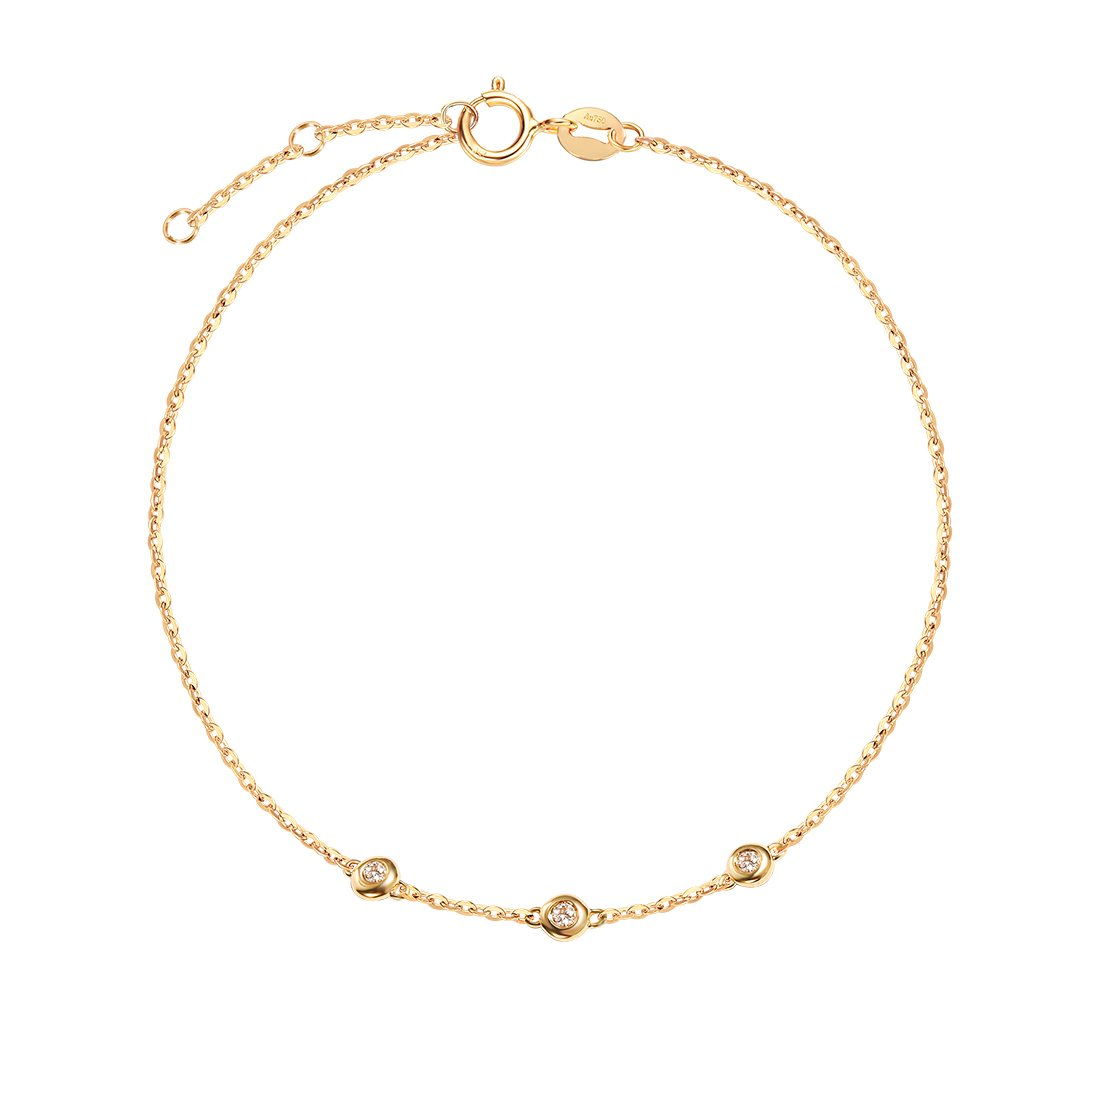 Carleen 18K Solid Yellow Gold Three Round Dot 0.045 ct Diamond Bracelet Minimalist Dainty Delicate Fine Jewelry for Women Girls by Carleen